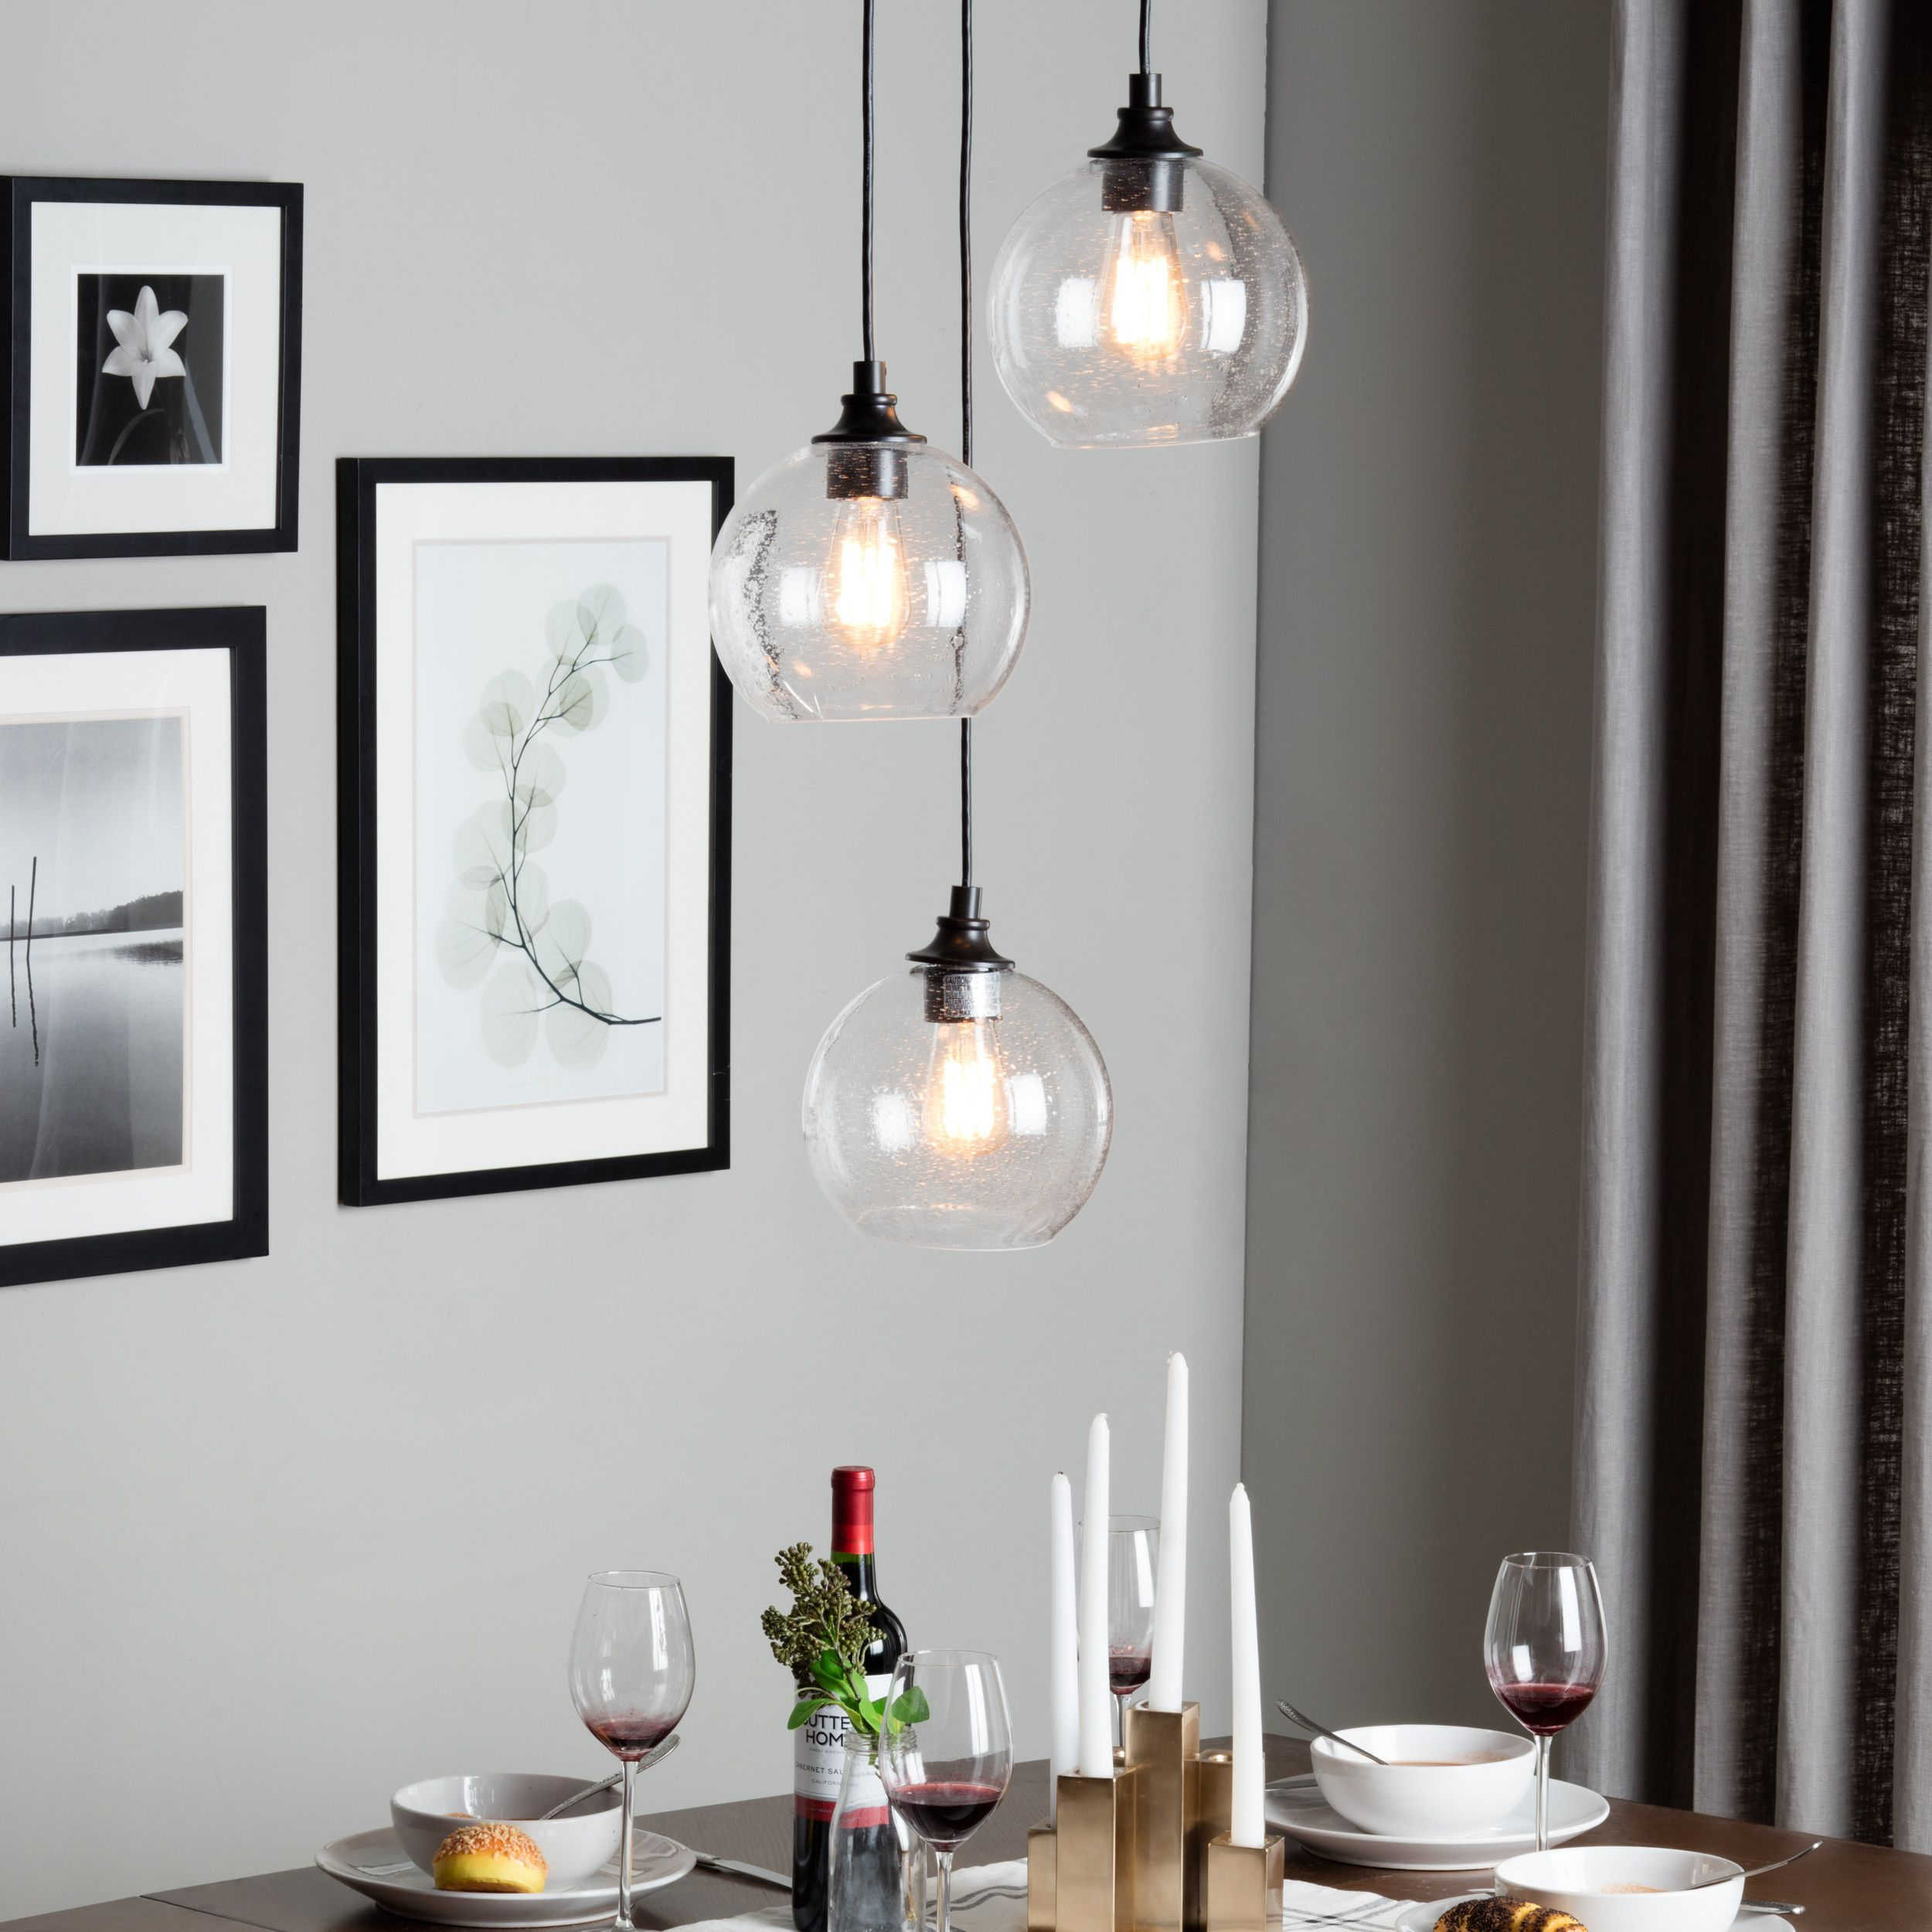 22 Best Ideas Of Pendant Lighting For Kitchen Dining Room ...